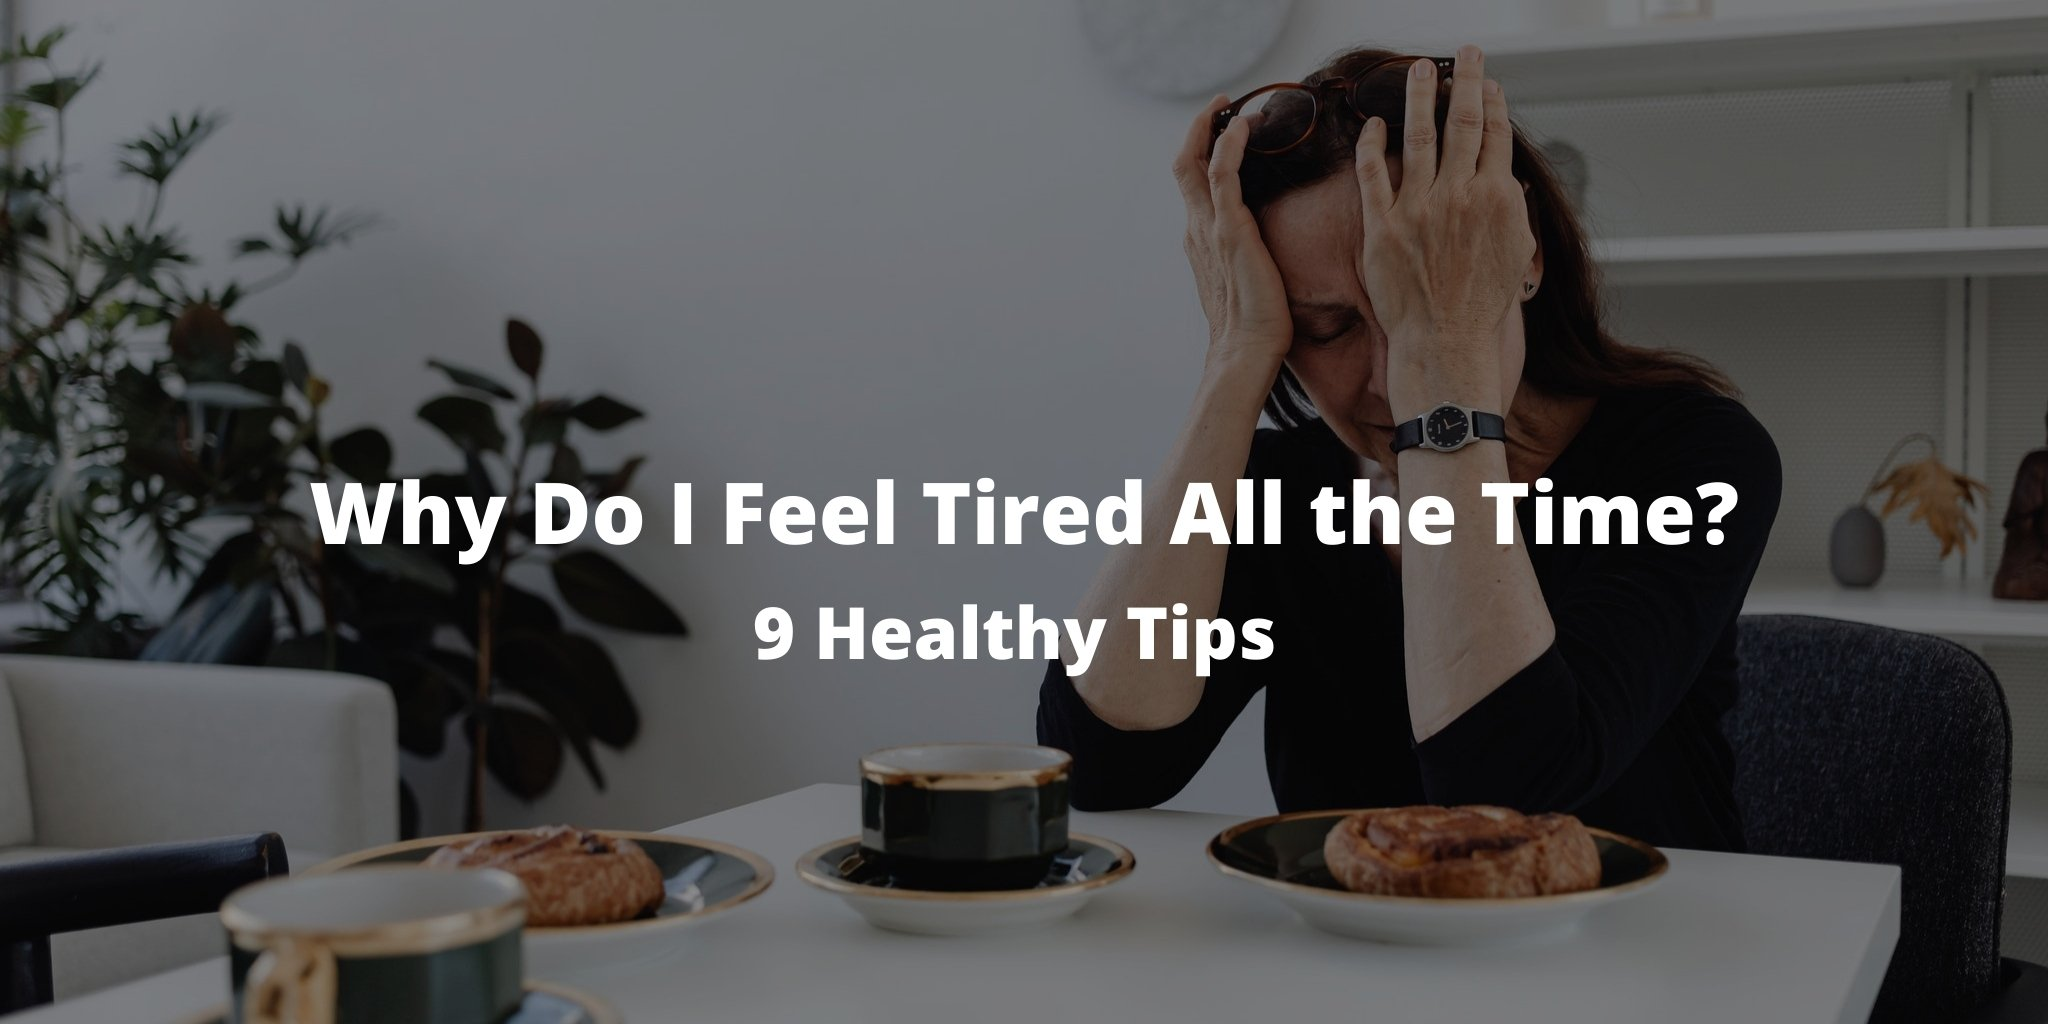 Why Do I Feel Tired All the Time? 9 Healthy Tips